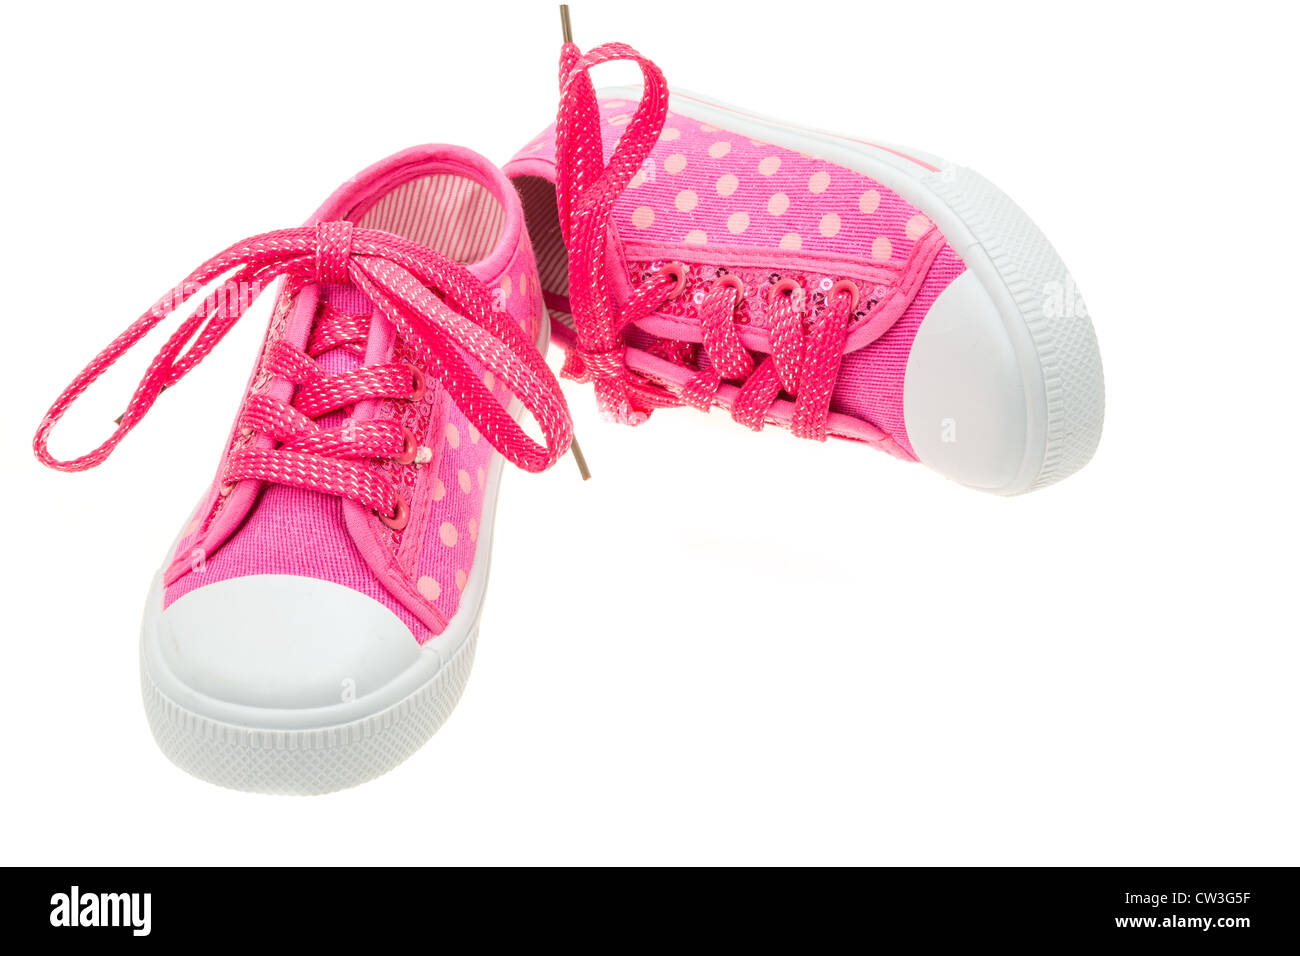 Pink shoes for a little girl - studio shot with a white background - Stock Image